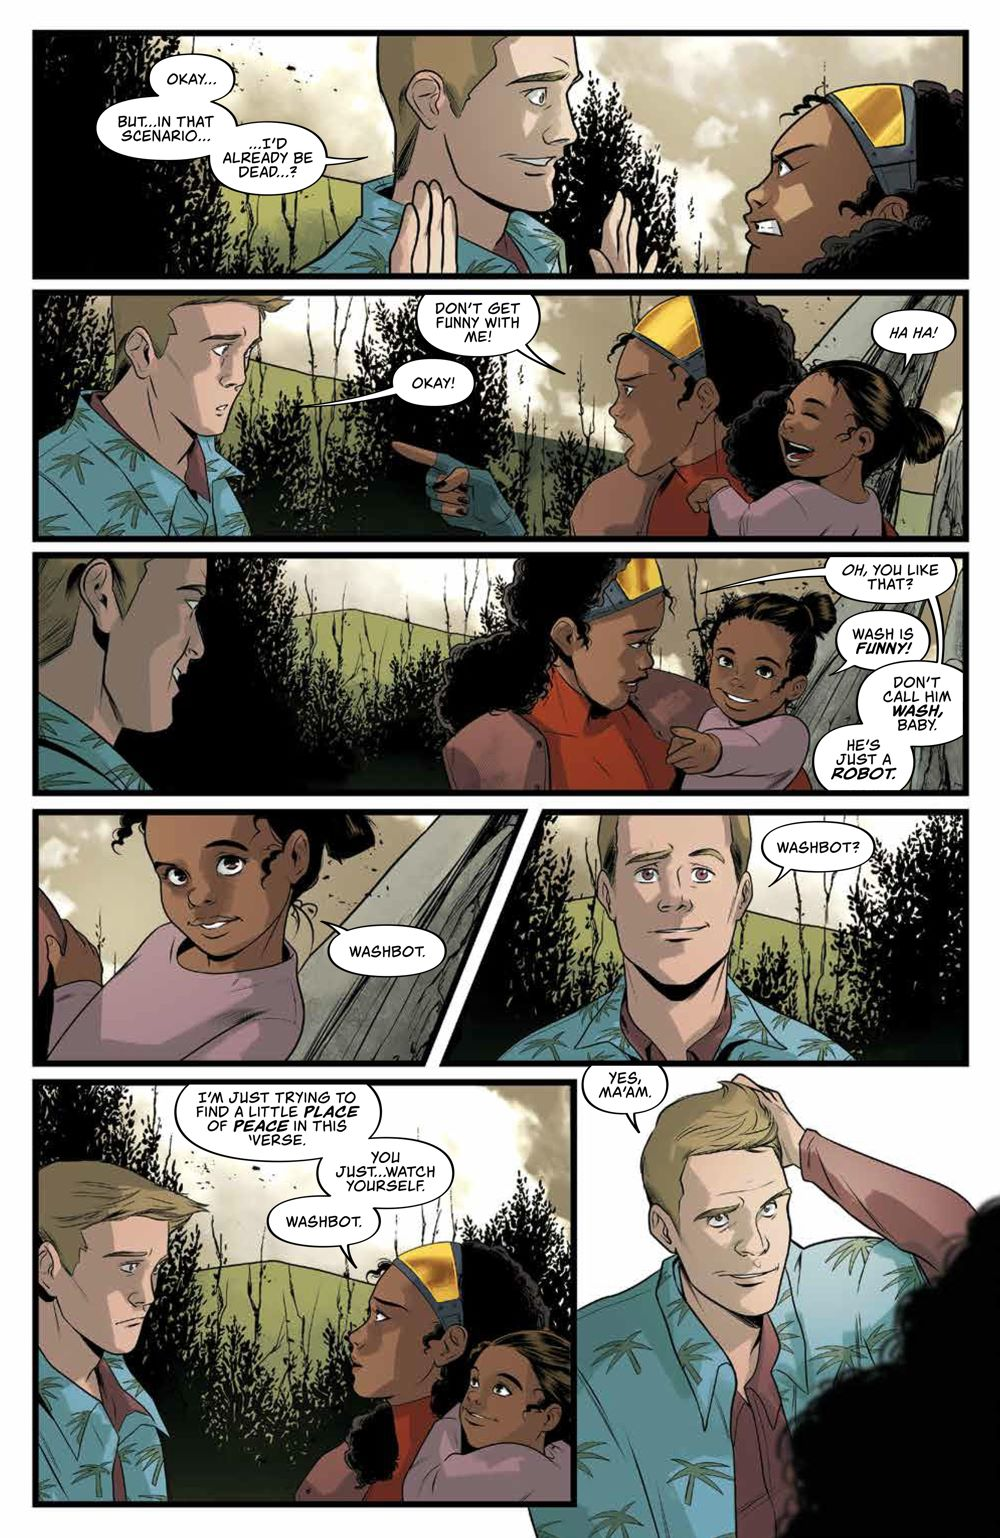 Firefly_029_PRESS_5 ComicList Previews: FIREFLY #29